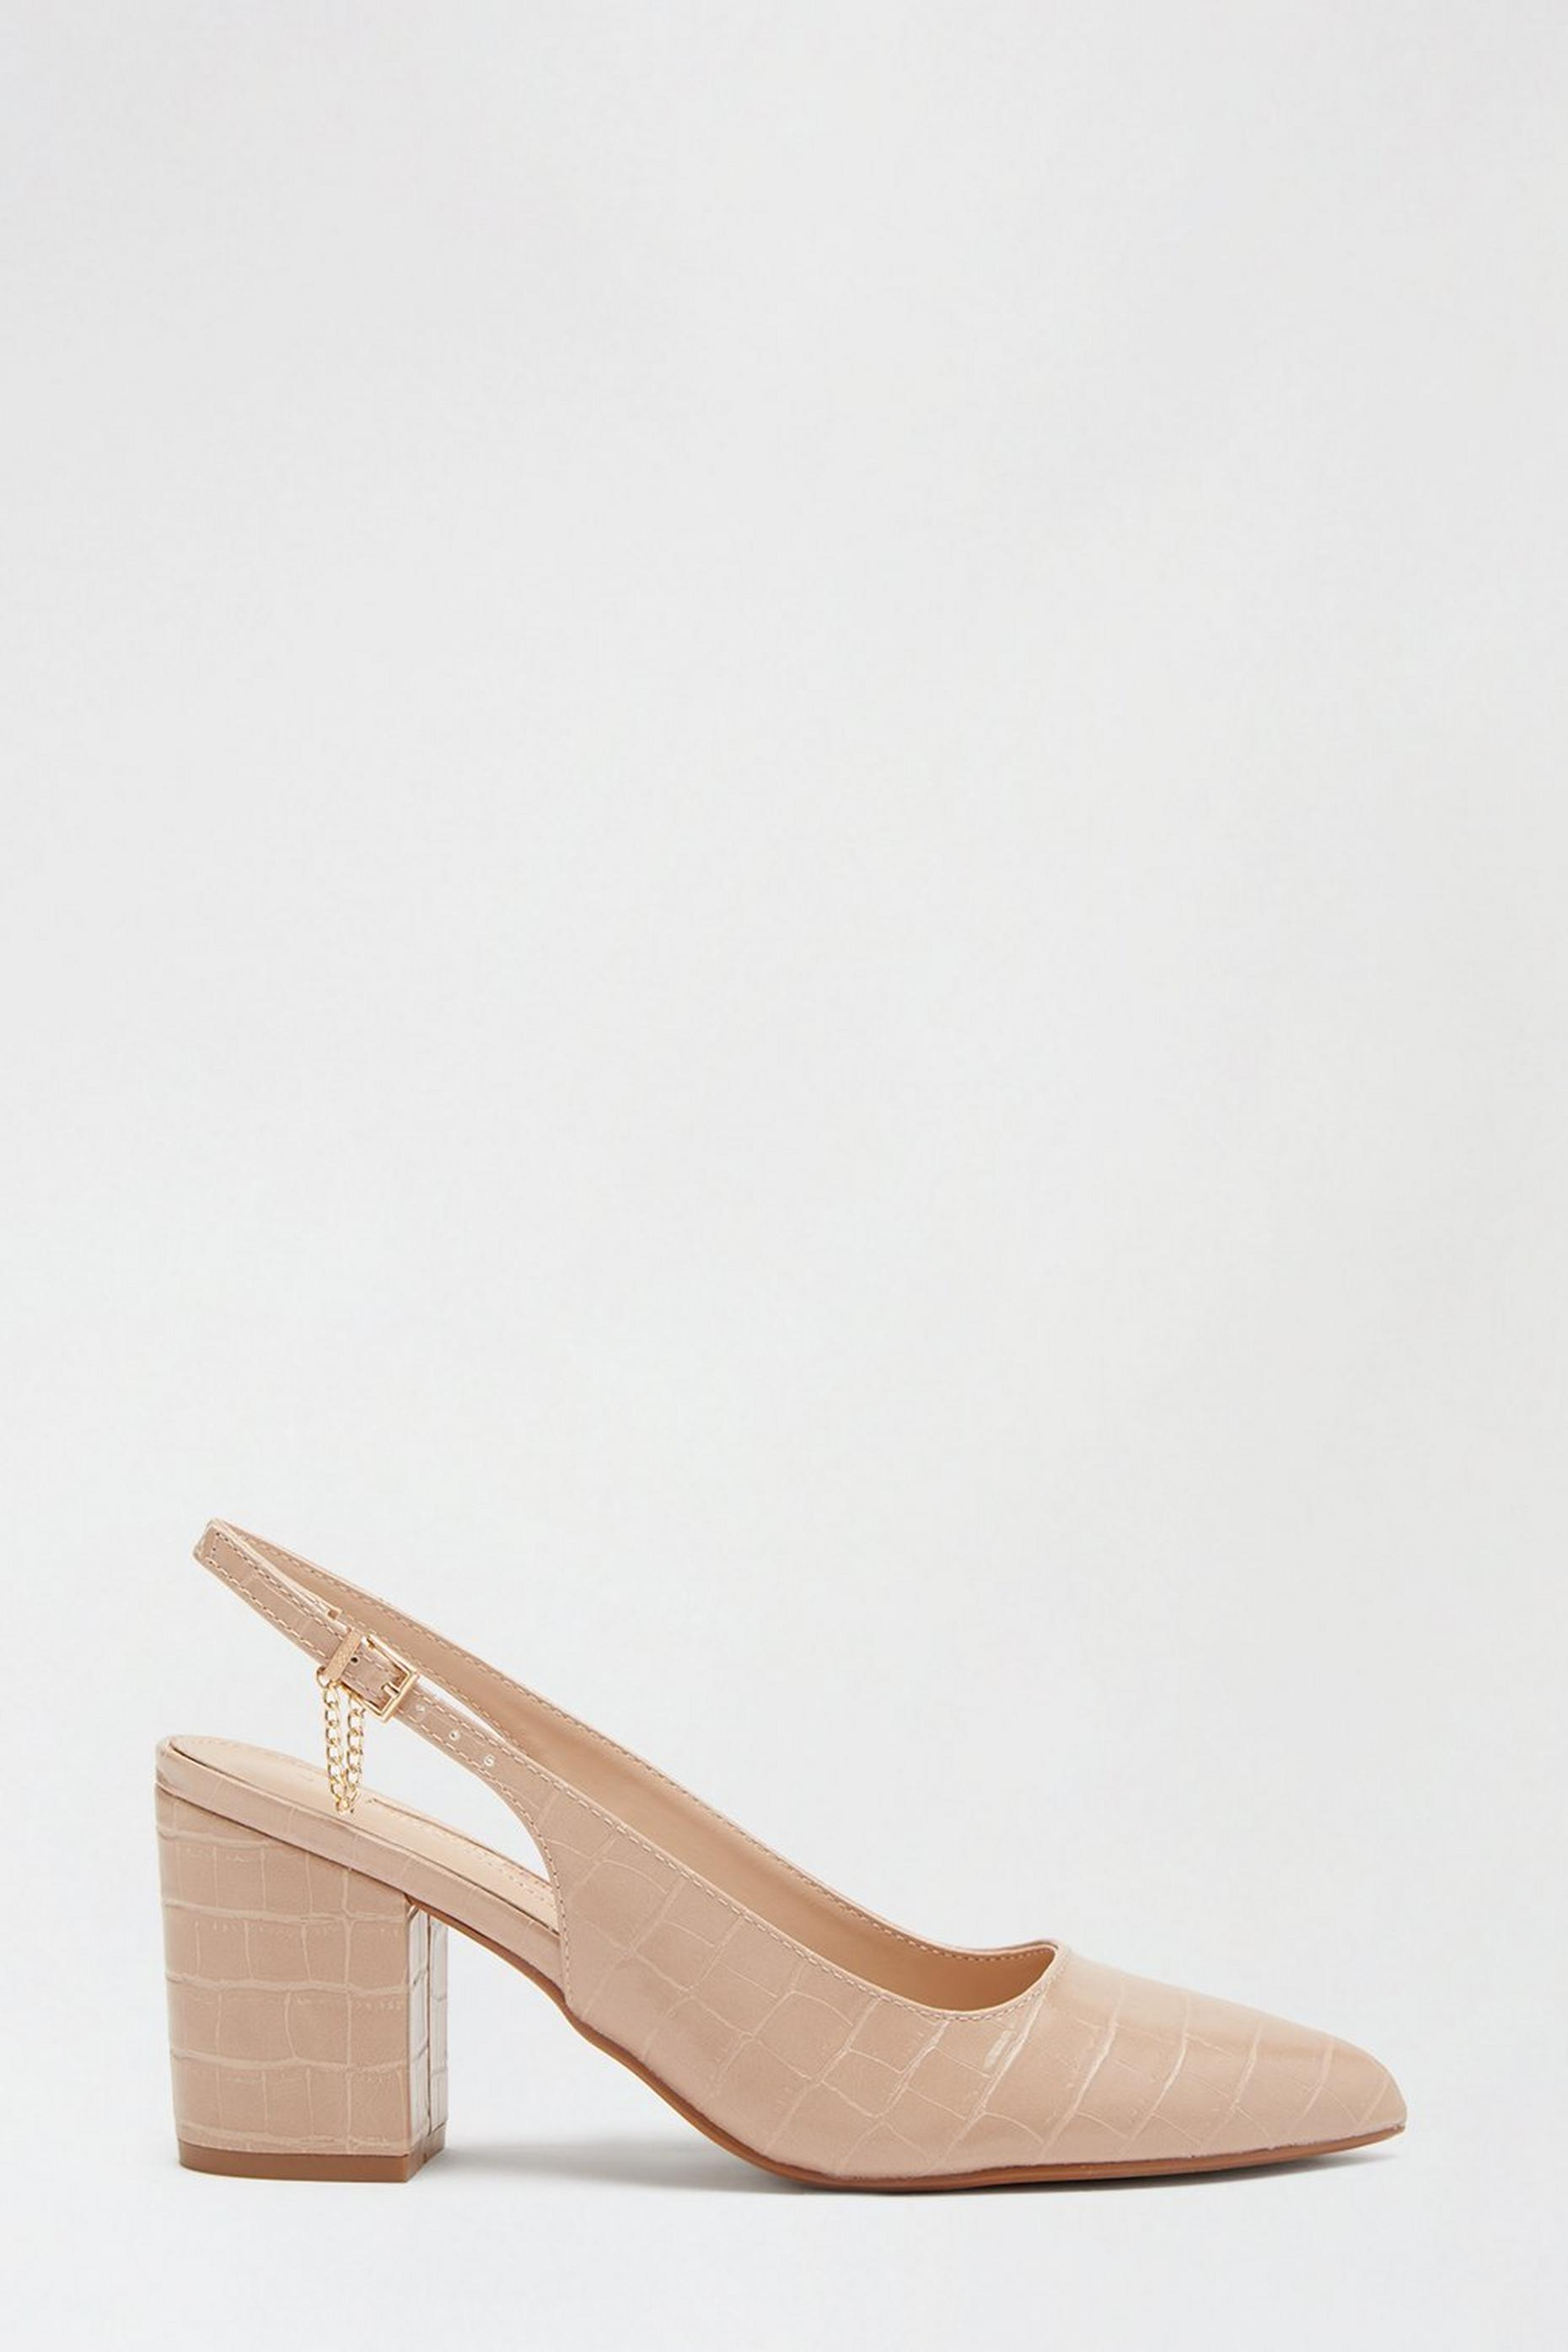 Blush Everlyn Slingback Court Shoe